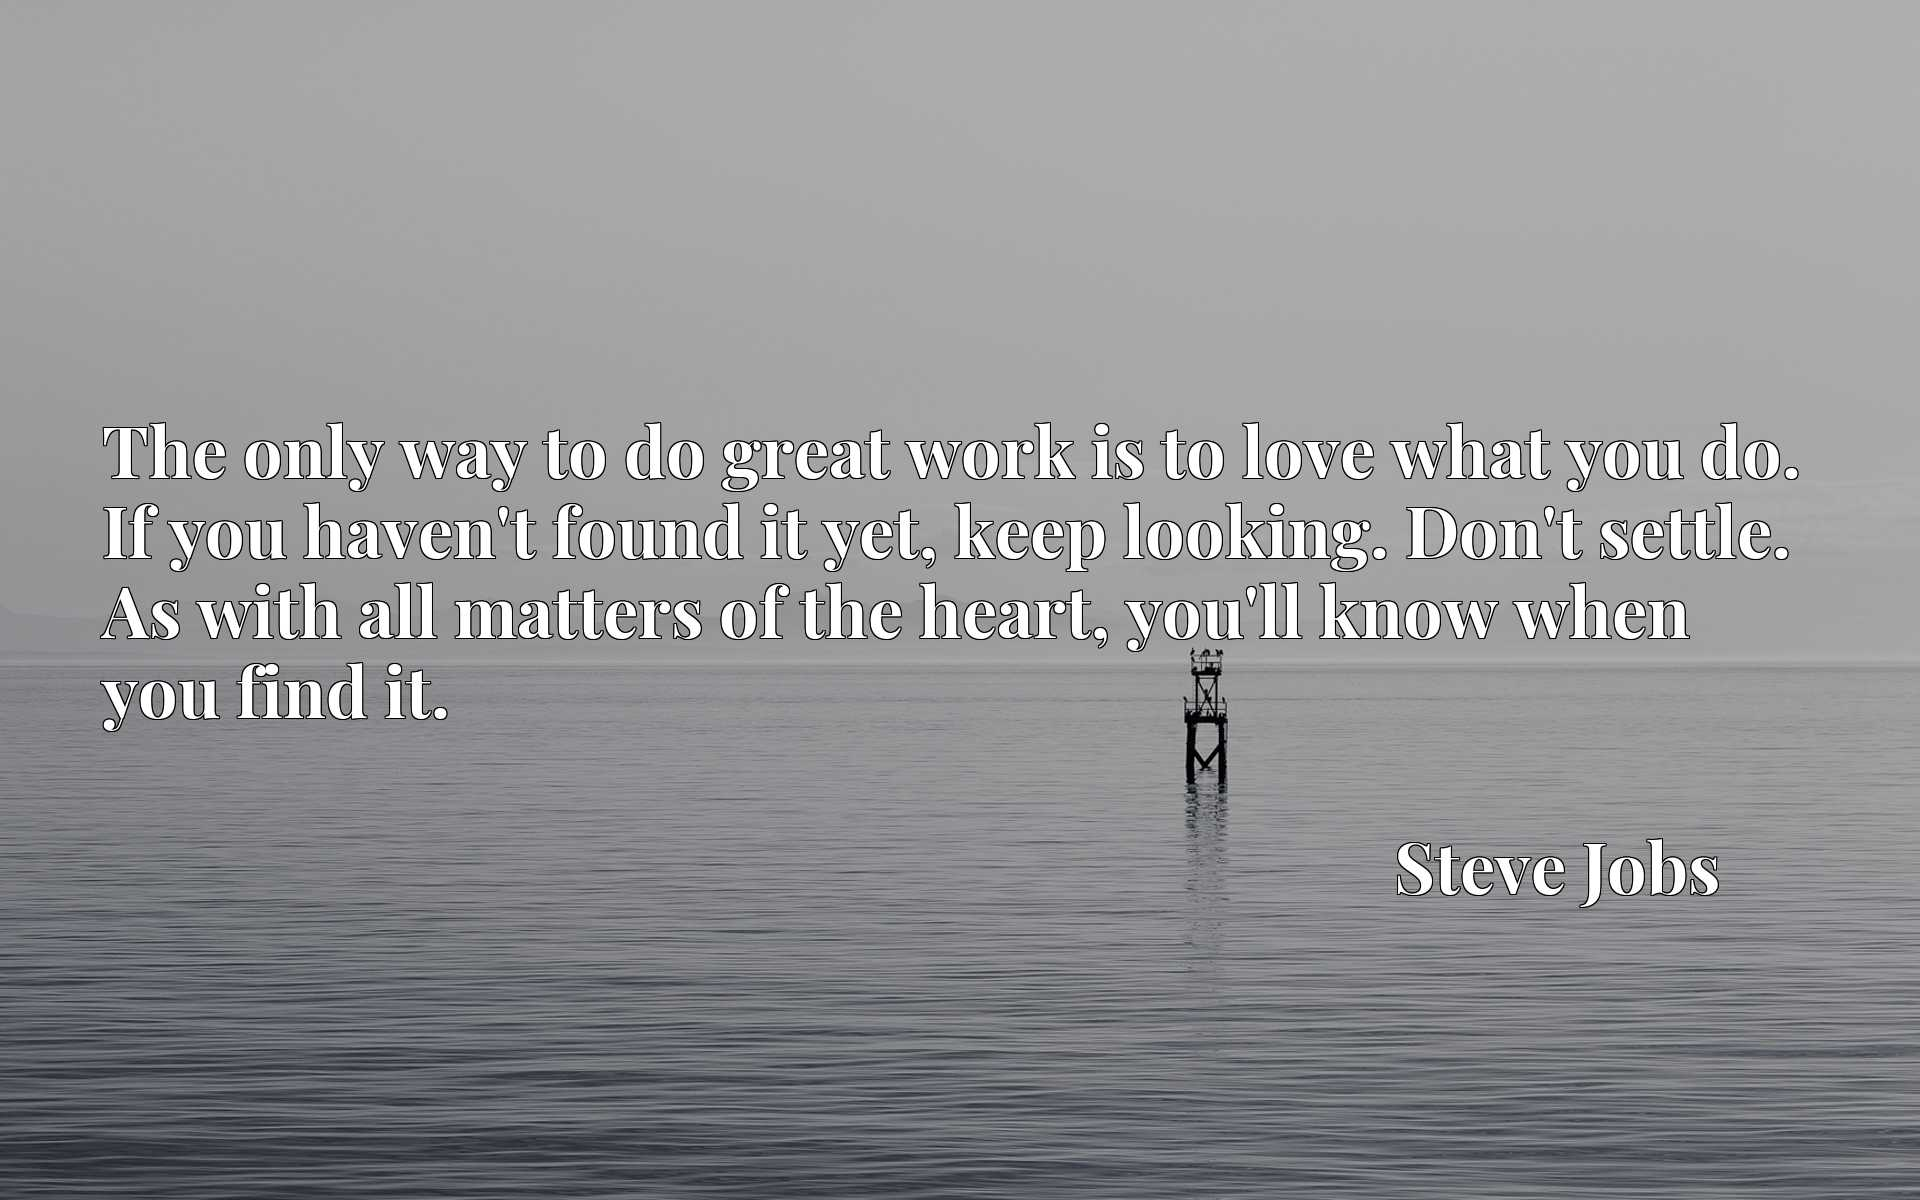 Quote Picture :The only way to do great work is to love what you do. If you haven't found it yet, keep looking. Don't settle. As with all matters of the heart, you'll know when you find it.